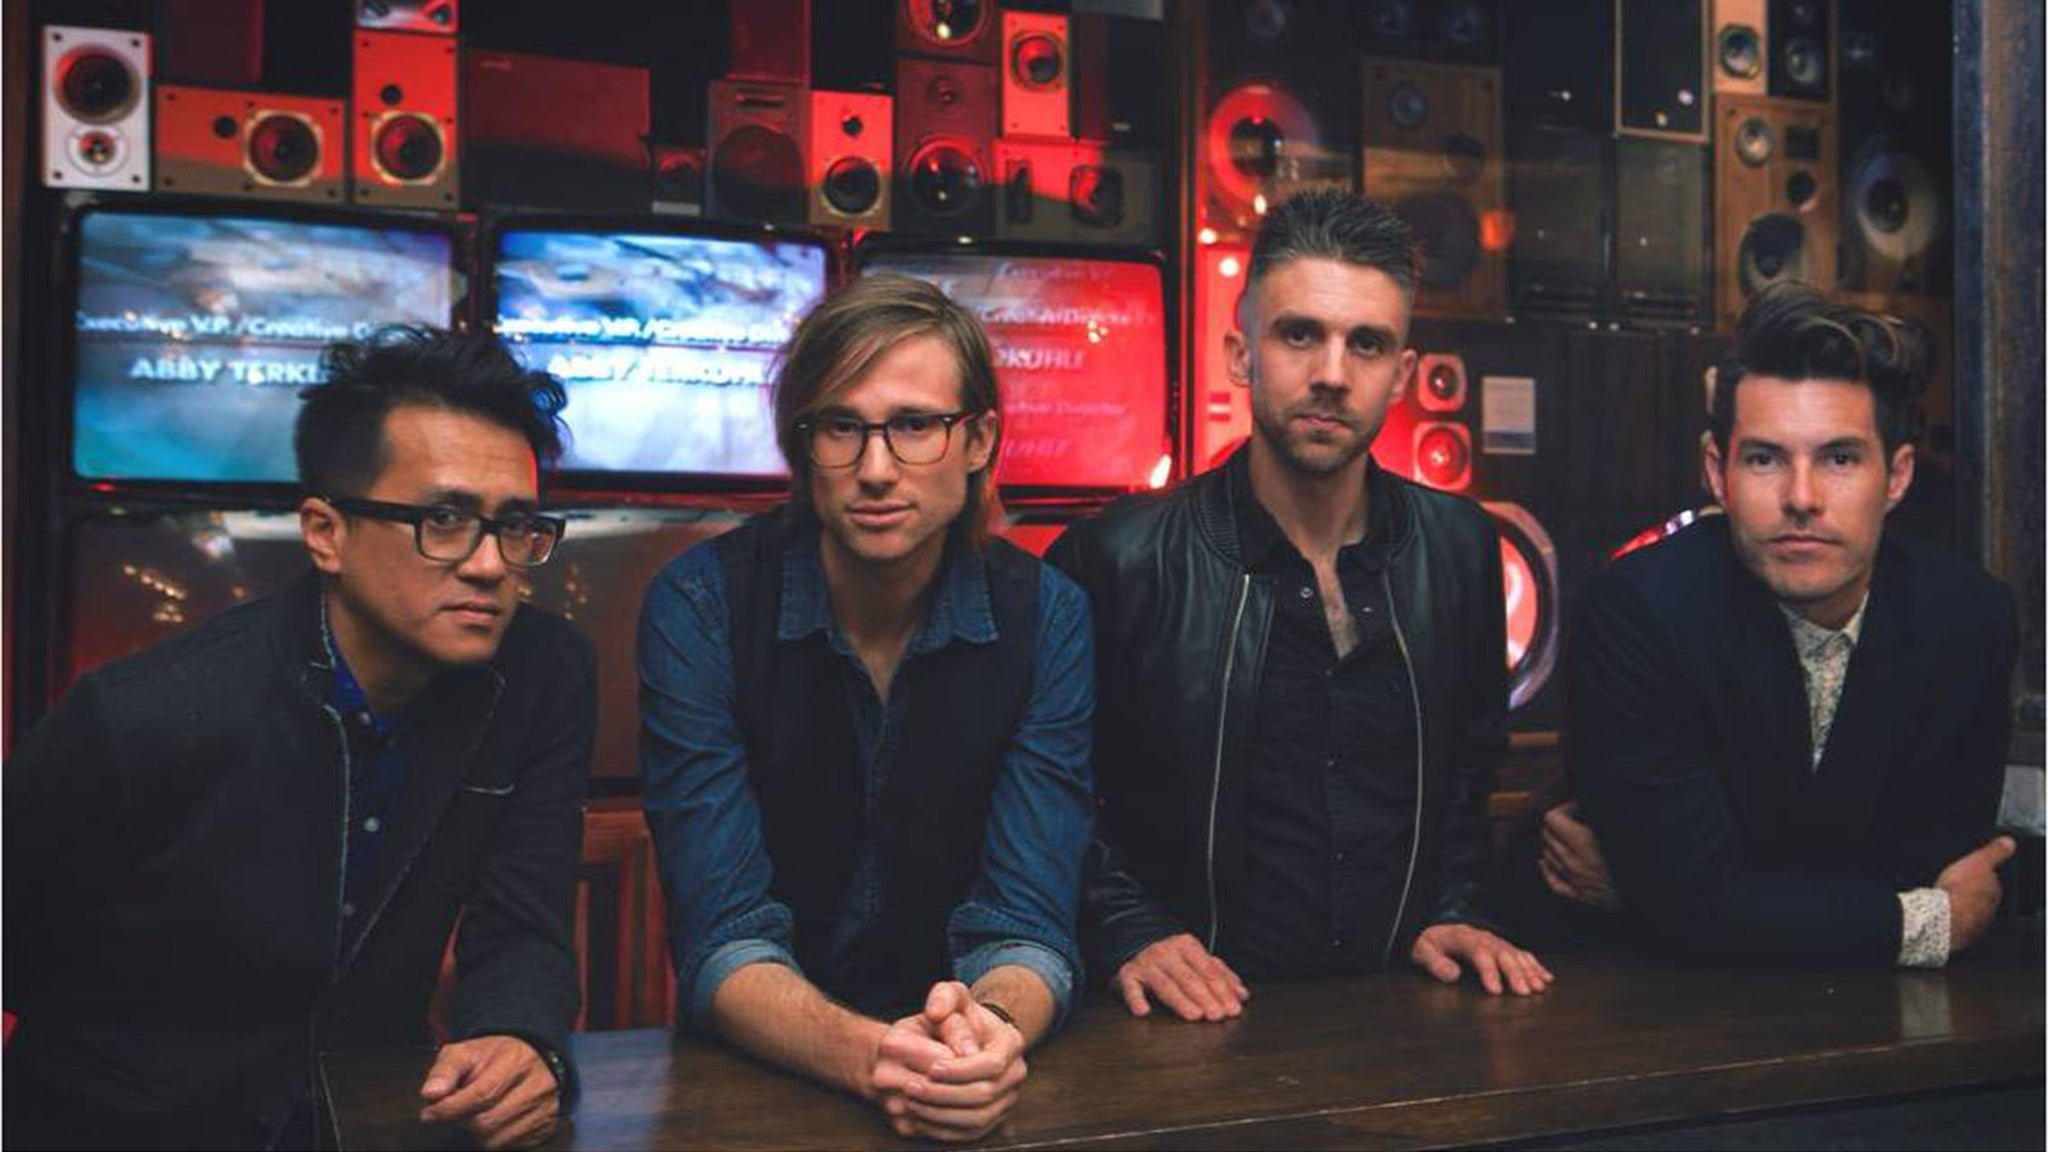 105.7 The Point Welcomes: Saint Motel at Delmar Hall